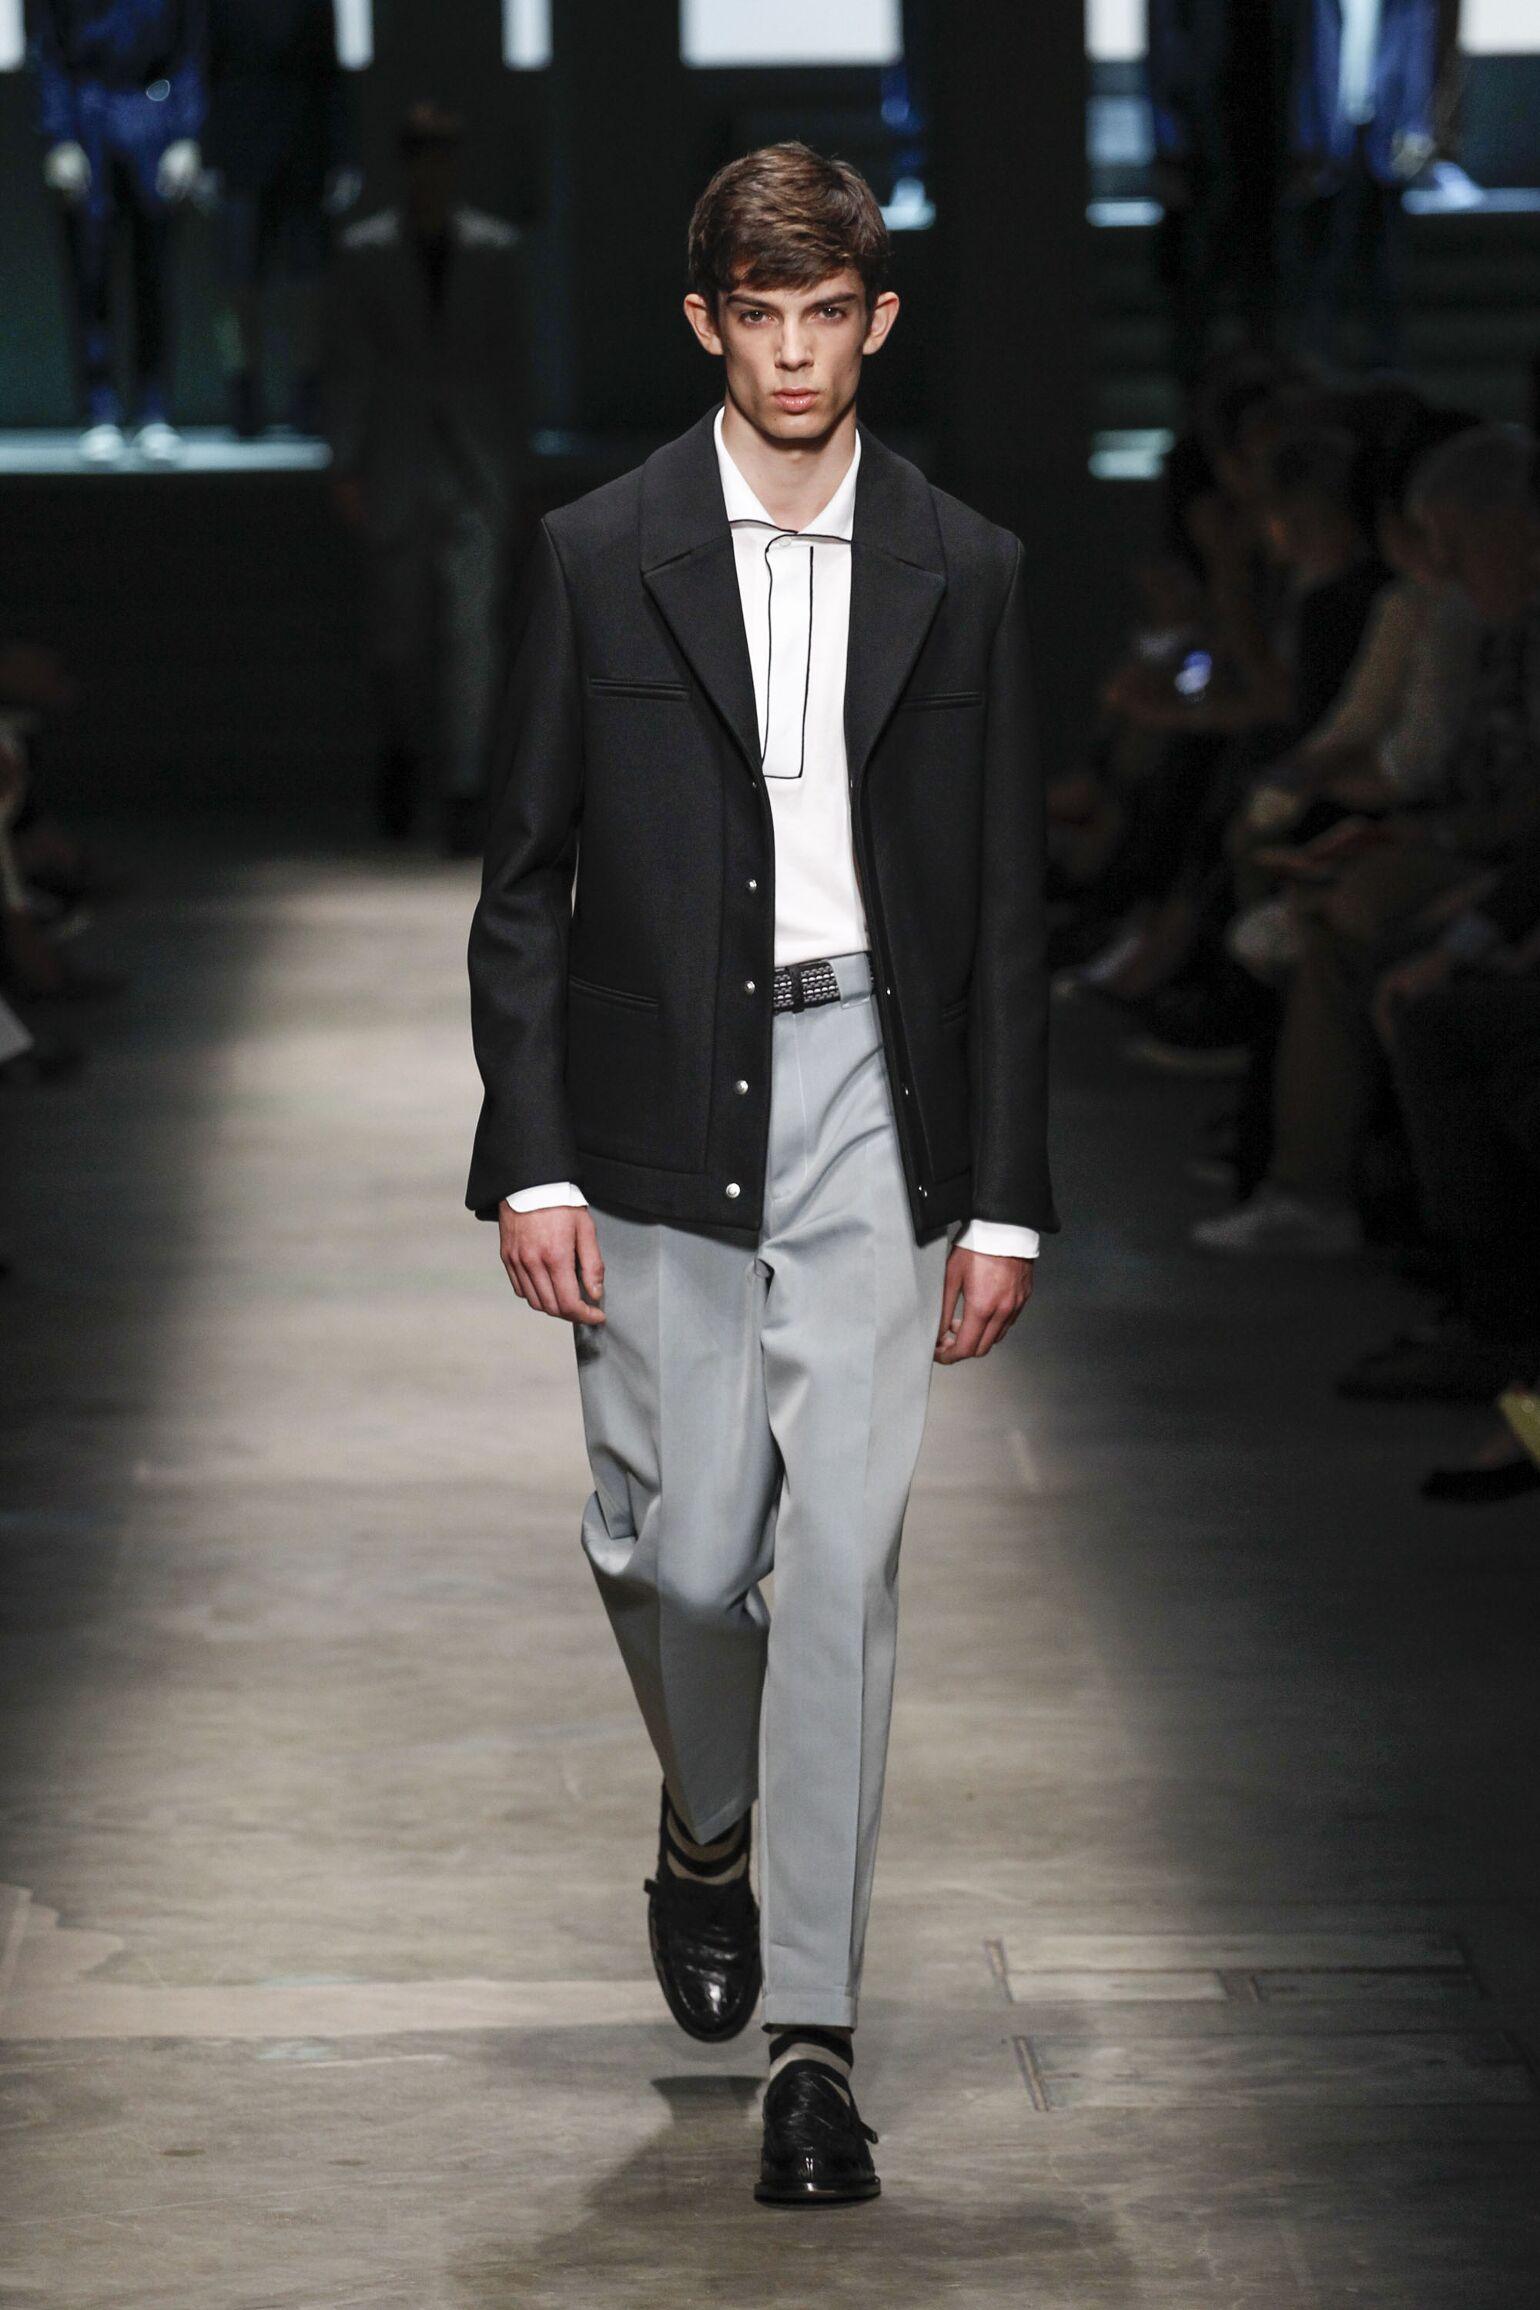 Catwalk Ermenegildo Zegna Couture Man Fashion Show Summer 2015